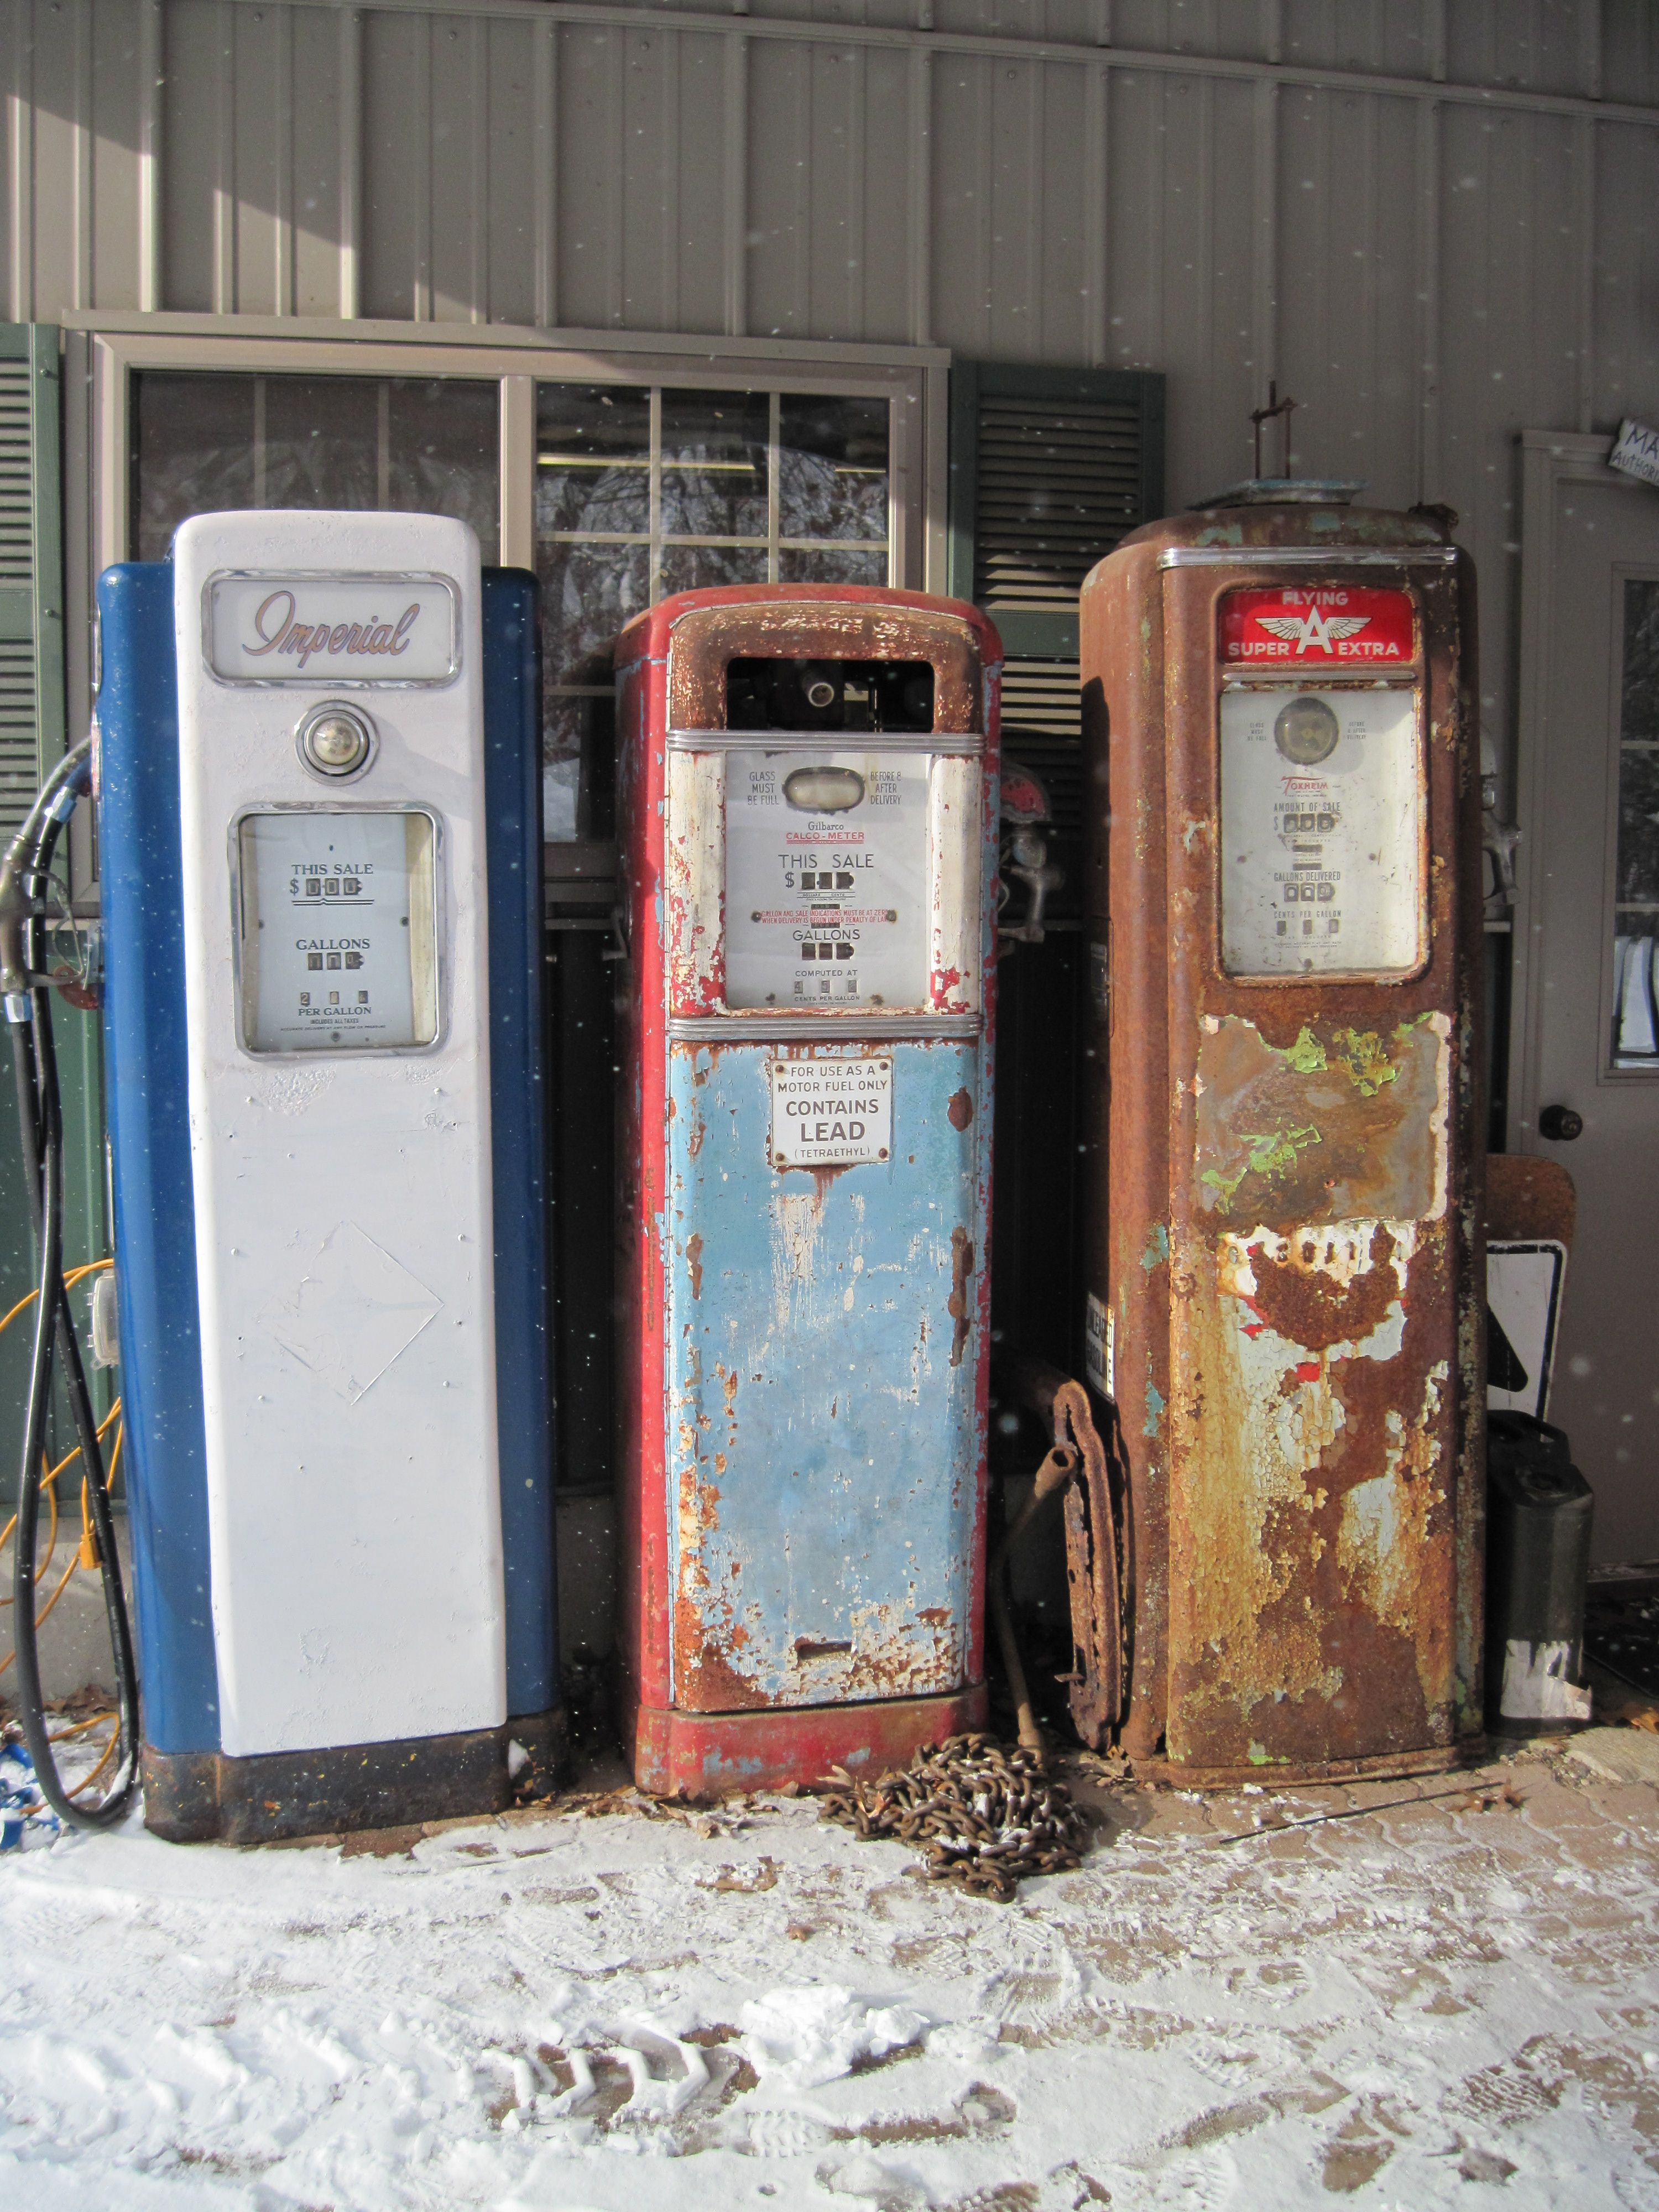 Wayne 70 Gilbarco 96 Tokheim 39 Tall | Gas pumps | Gas pumps